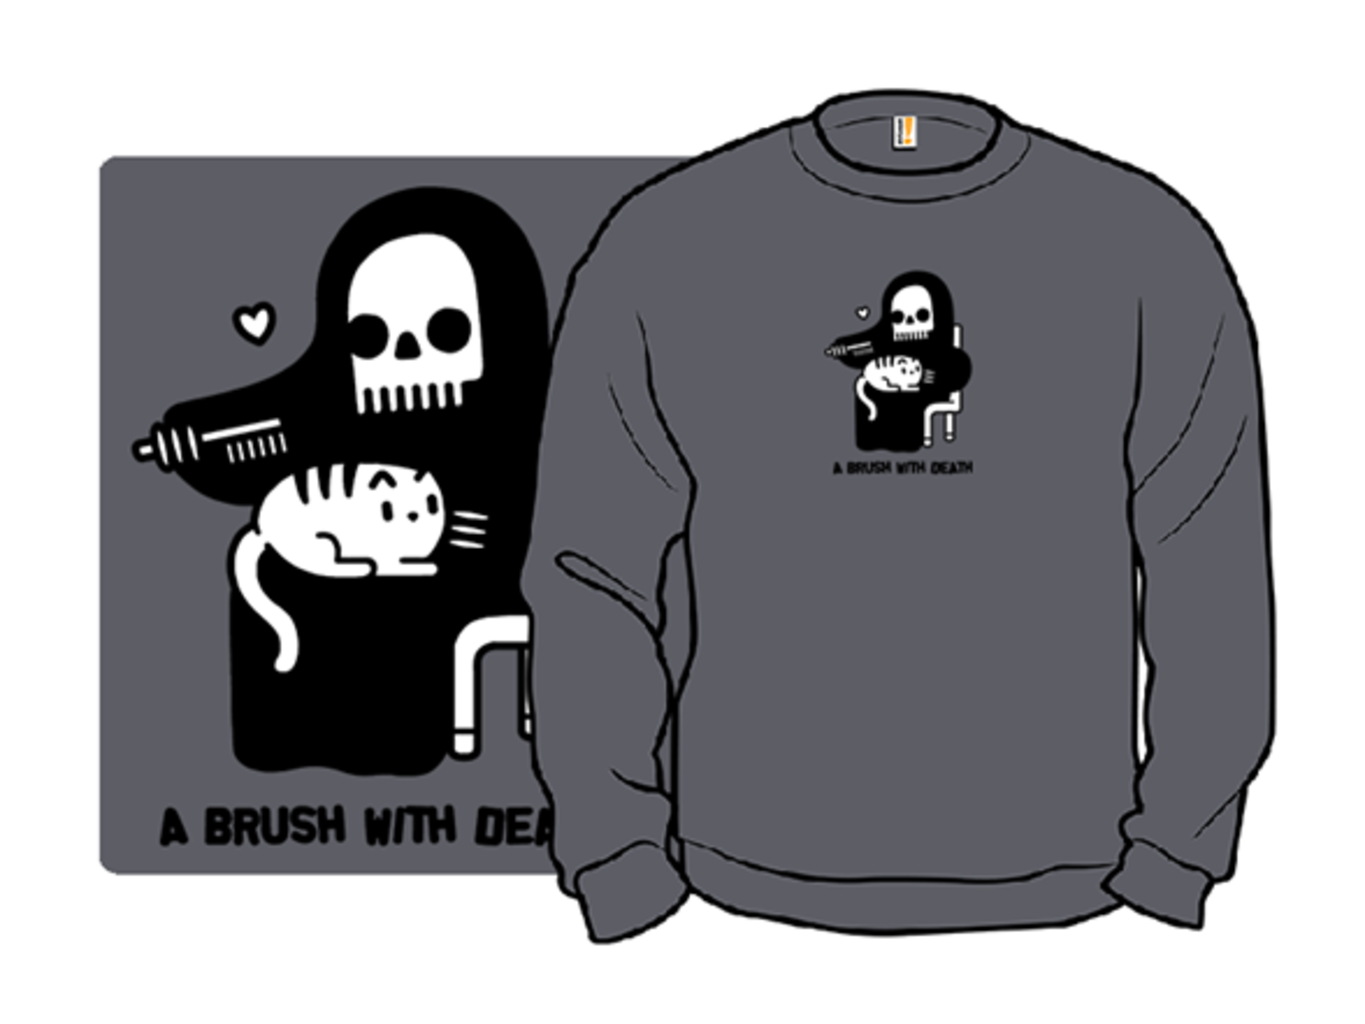 Woot!: A Brush with Death